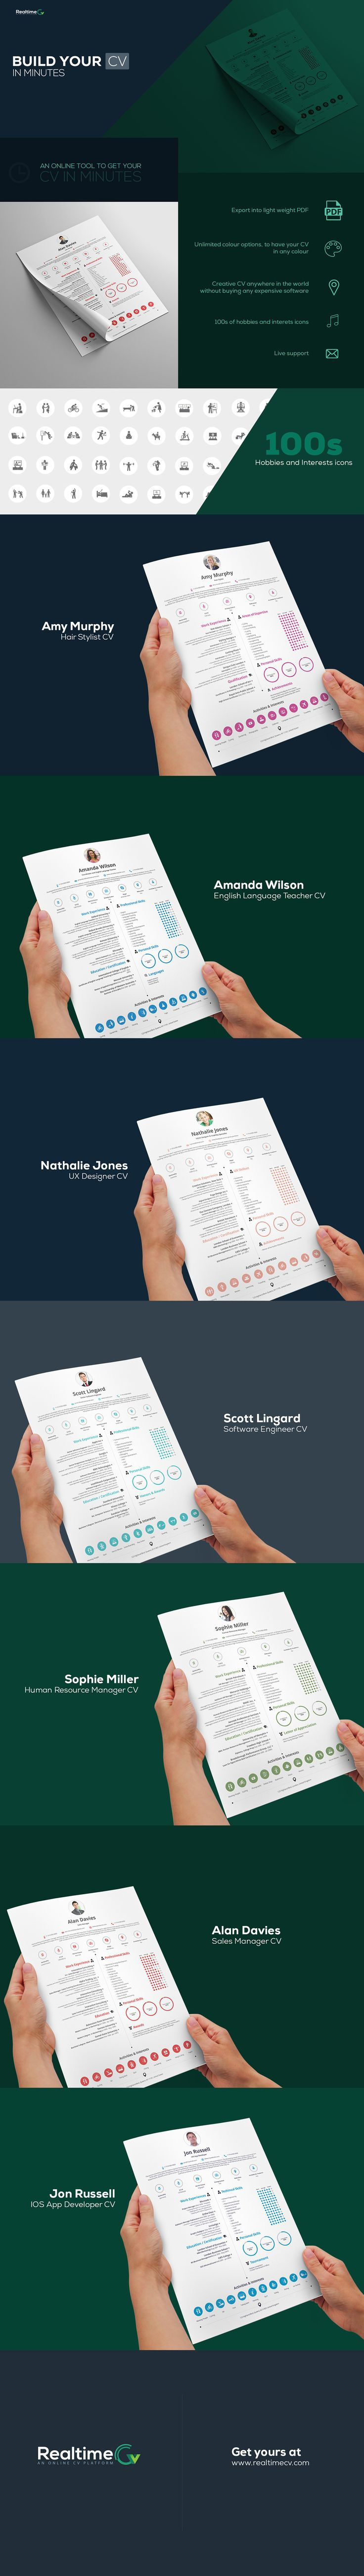 images about cv design resume builder get your info graphic cv in minutes using interactive real time cv tool